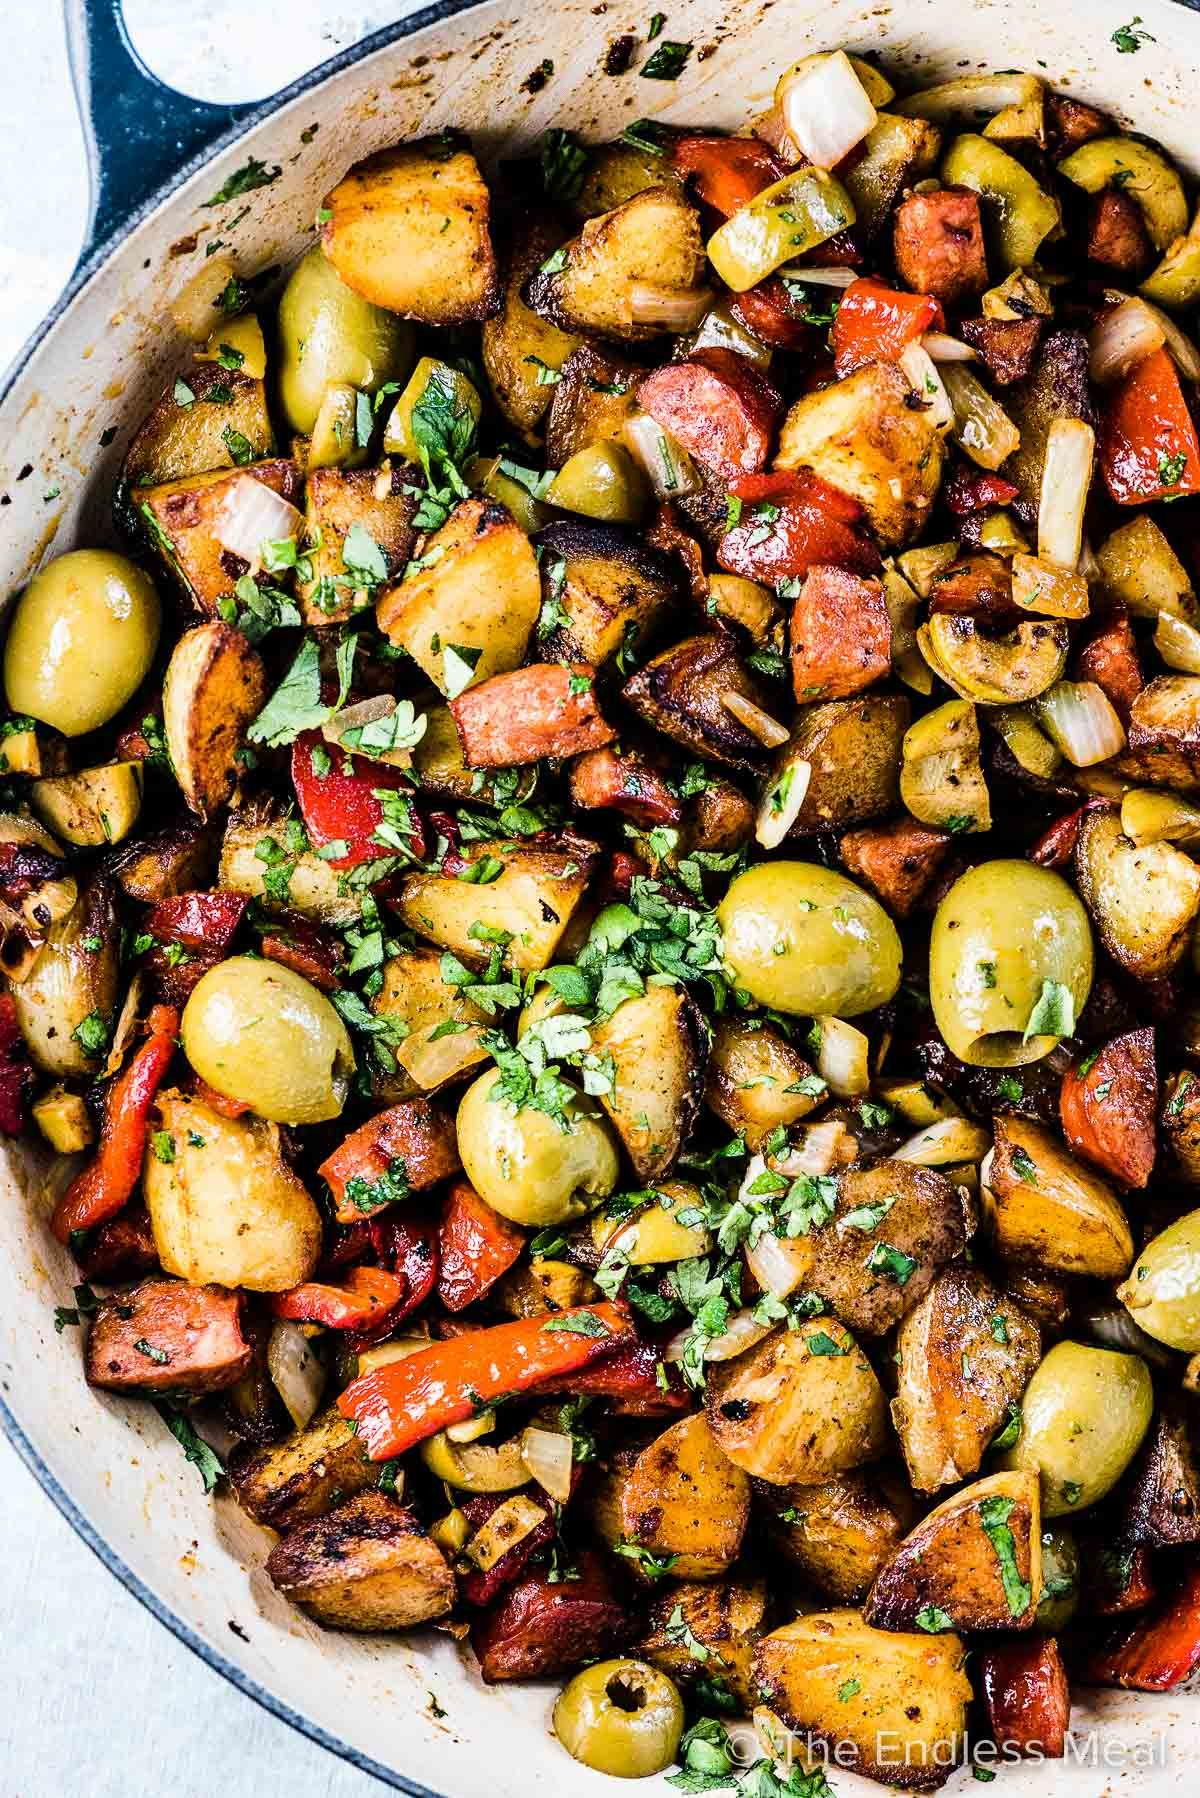 Spanish Breakfast Potatoes with Gordal Olives from Spain